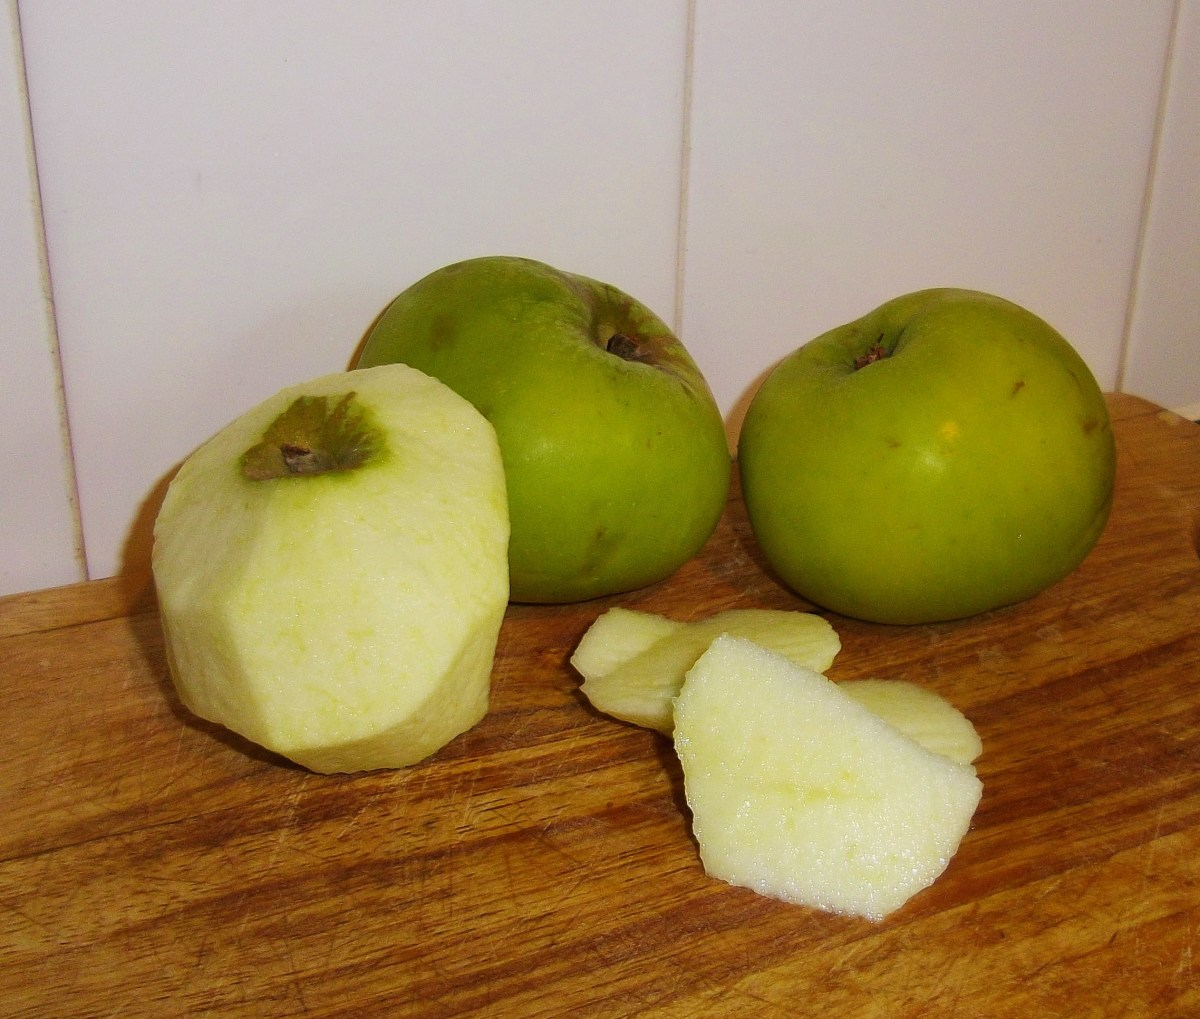 Peel, core and slice your apples to make the sauce.